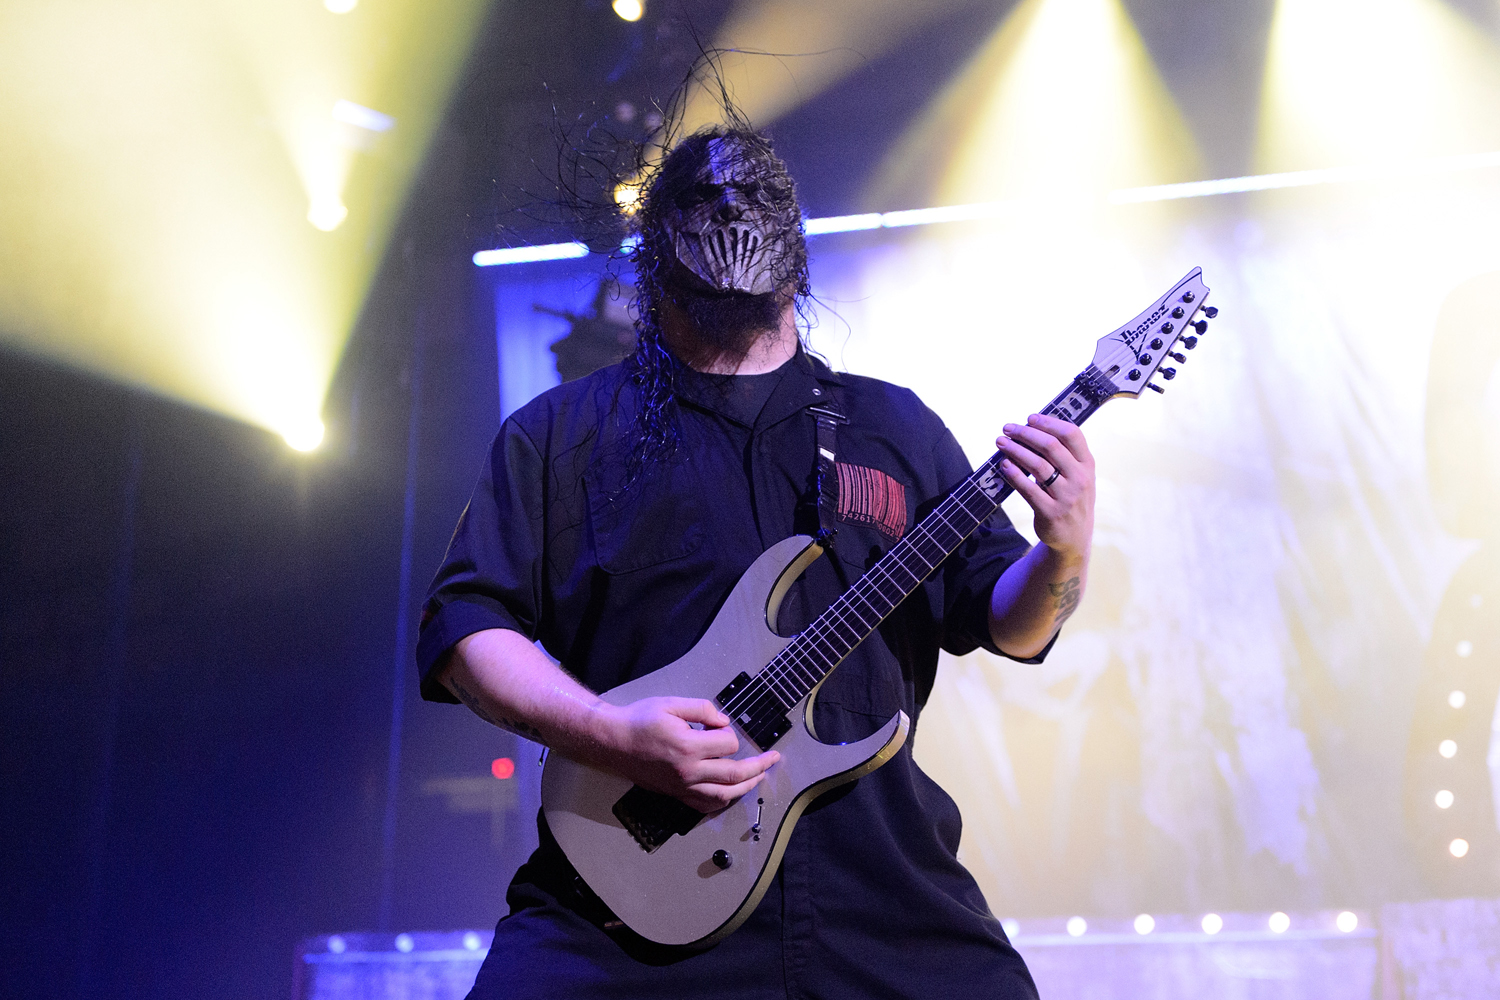 Mick Thomson of Slipknot performs at at the Allstate Arena on Nov. 28, 2014 in Chicago.